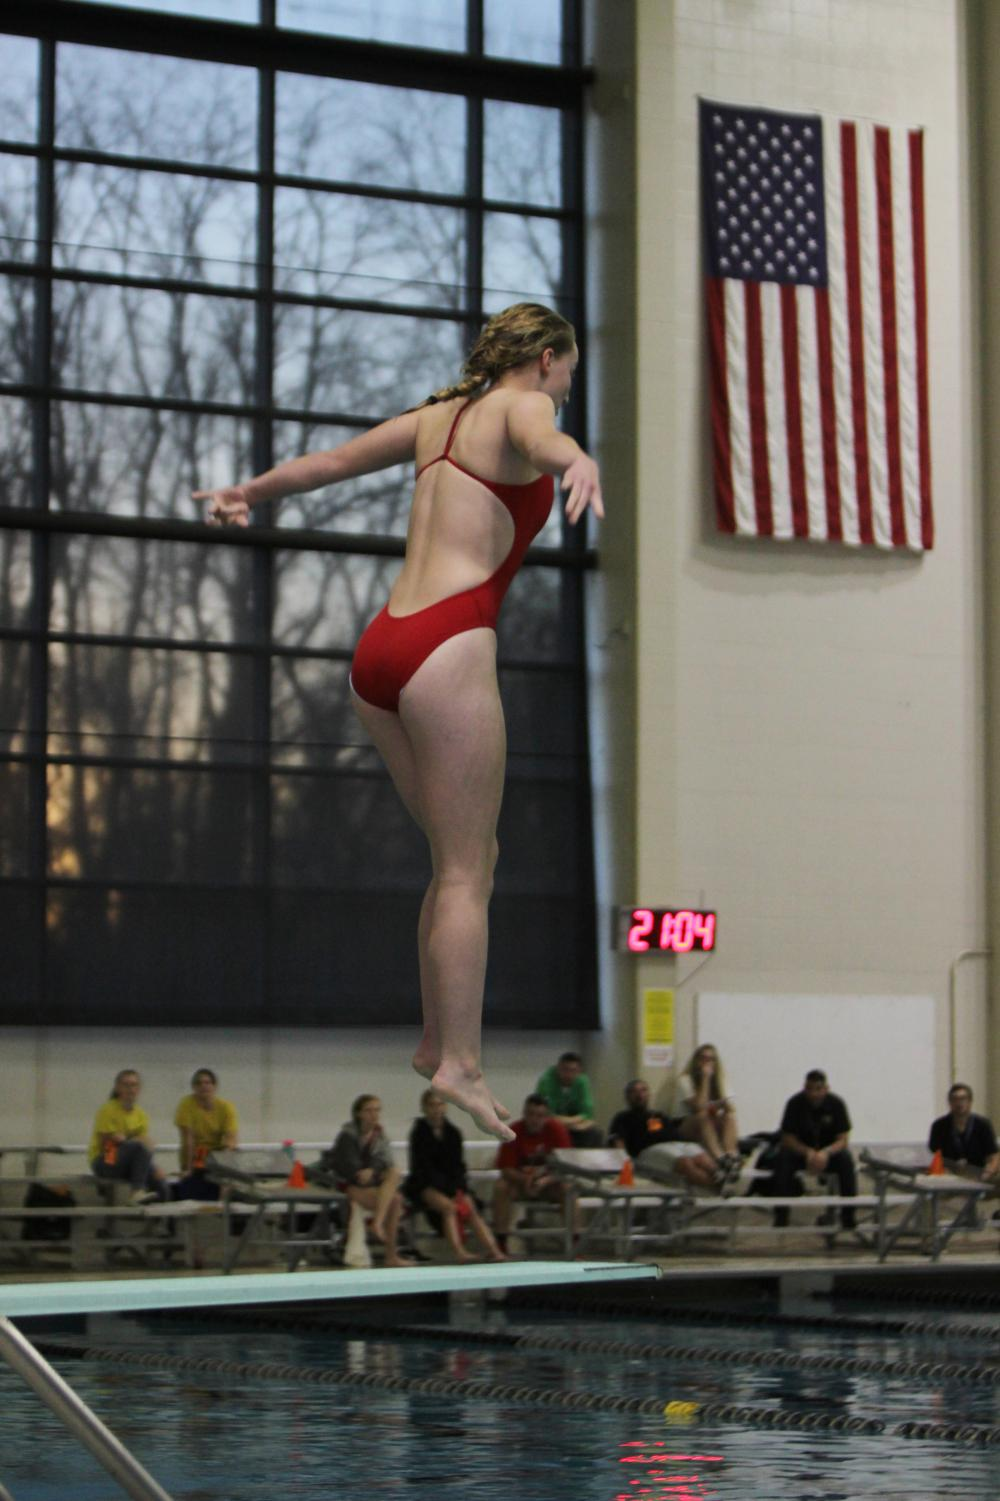 Beginning+her+first+dive%2C+Katie+Hastings%2C+sophomore%2C+springs+from+the+board+at+the+state+swim+and+dive+meet+Feb.+14.